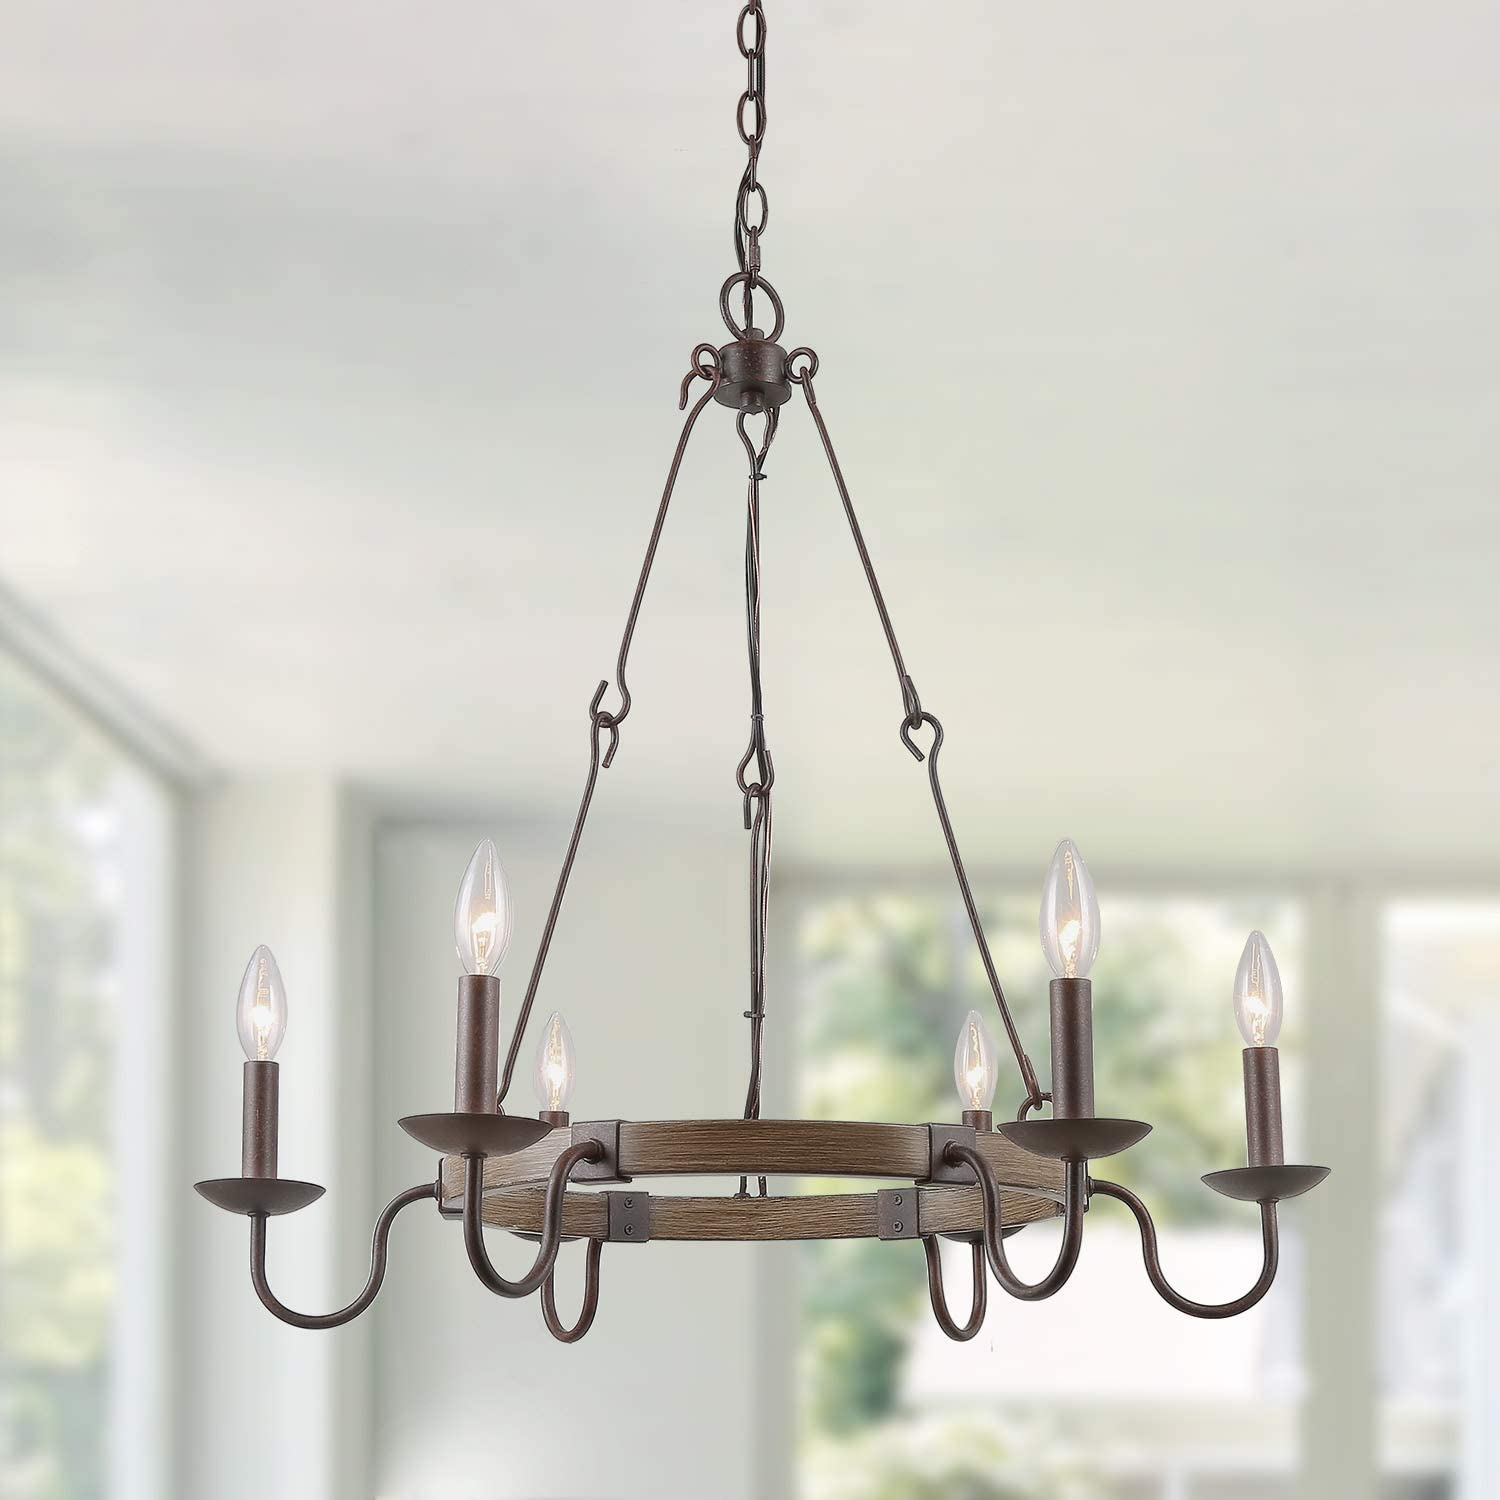 """LOG BARN Rustic French Country Chandelier, 6 Lights Wagon Wheel Hanging Island Lighting for Kitchen in Rusty Metal & Faux Wood Finish, 28"""" Medium Farmhouse Round Pendant Light Fixture"""